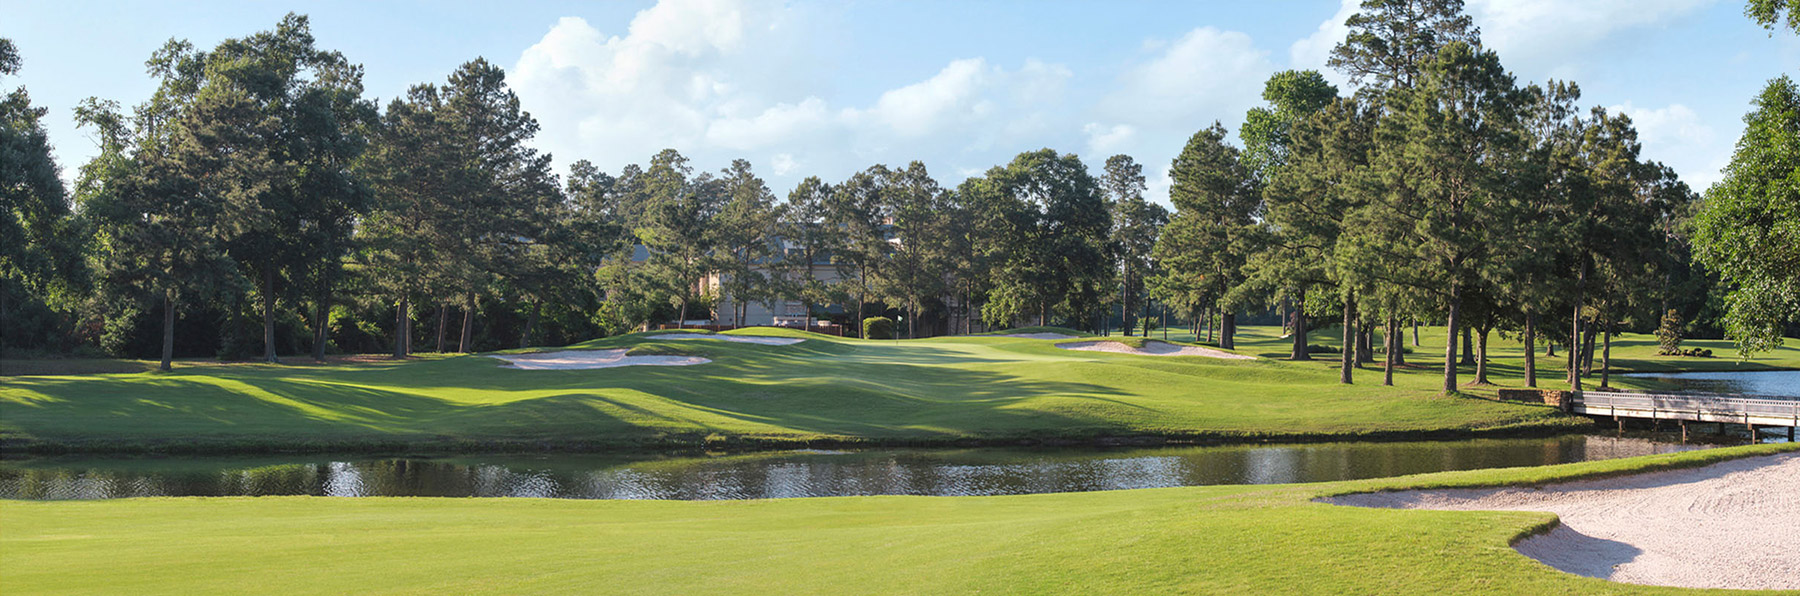 Golf Course Image - Woodlands-Palmer King Course No. 9